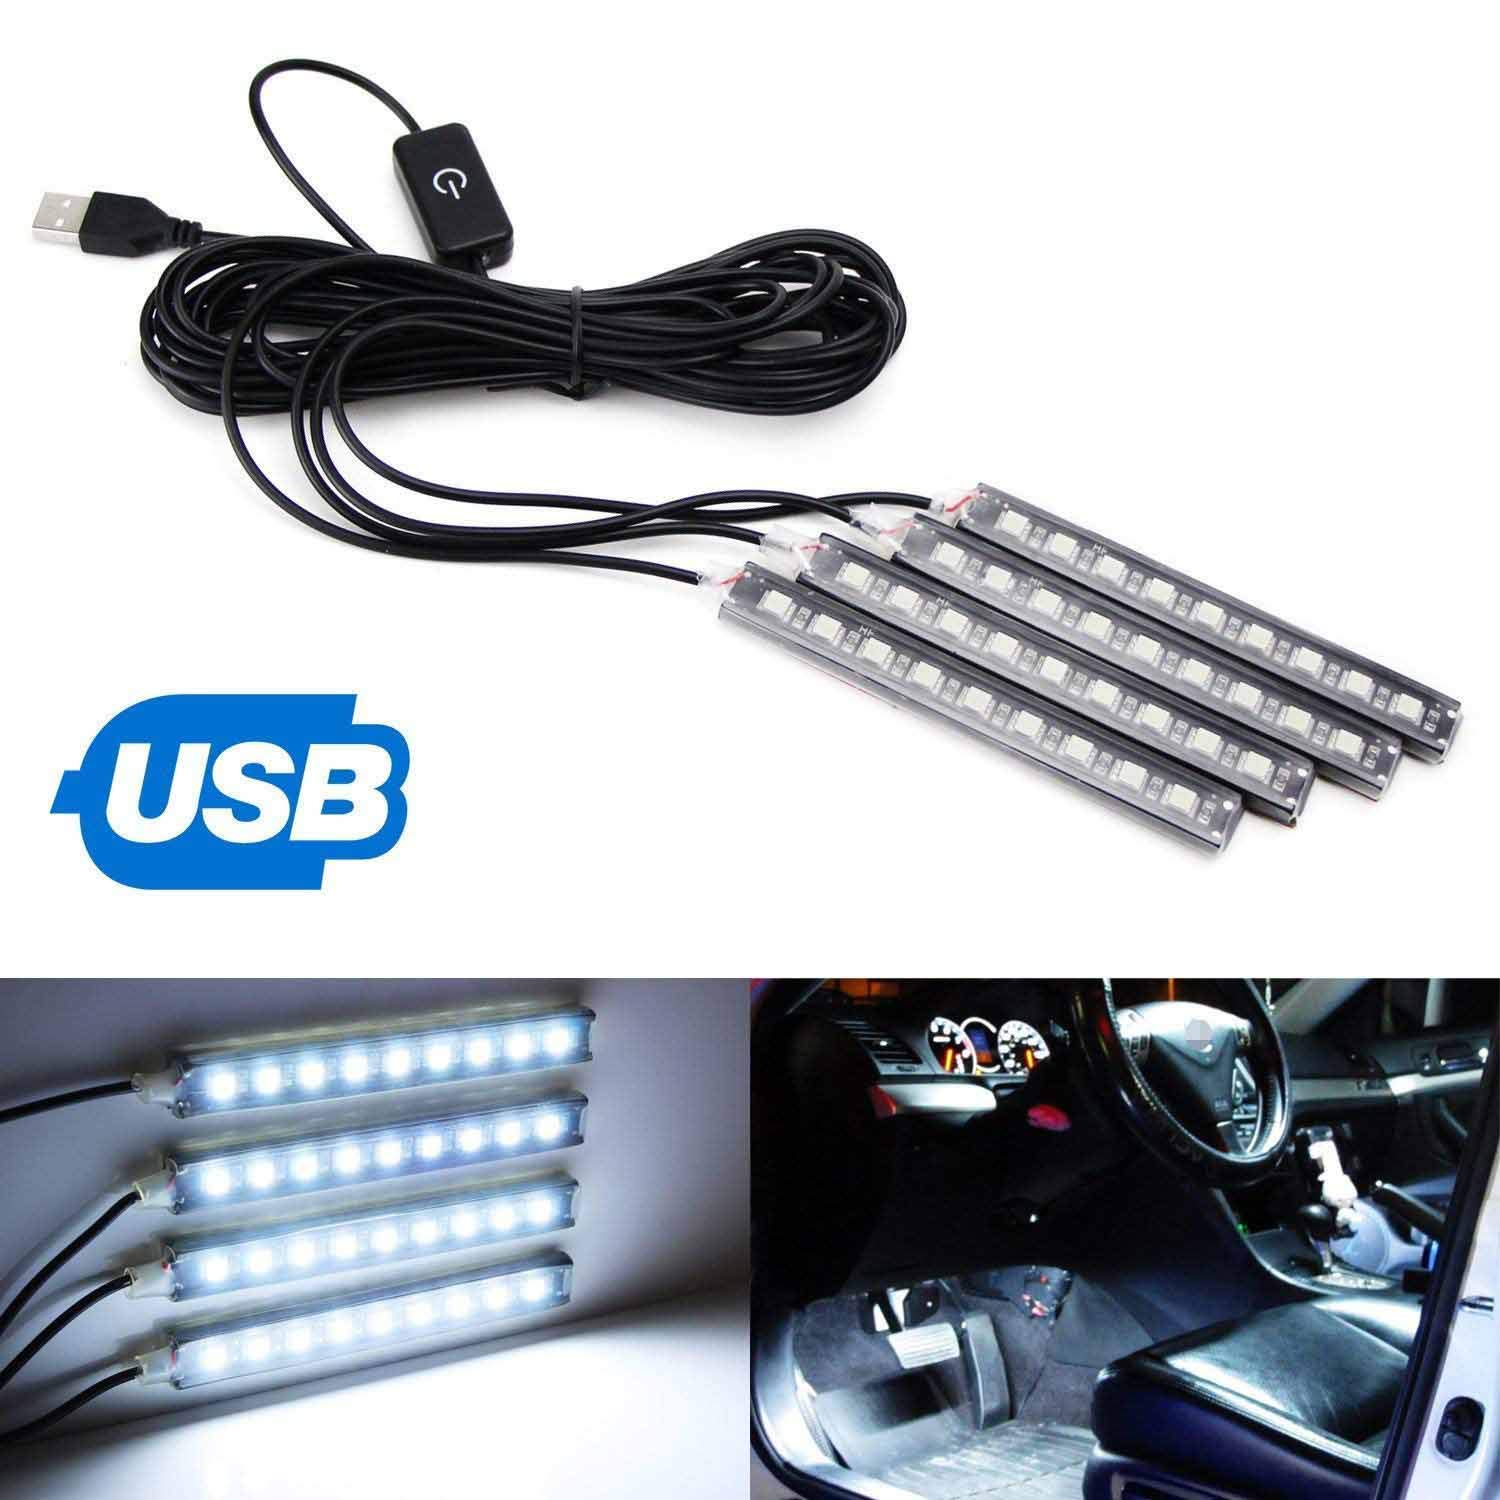 iJDMTOY 4pc 5-Inch 36-SMD LED Ambient Styling Lighting Kit As Car Interior Decoration, Powered From Car 5V USB Socket, Xenon White